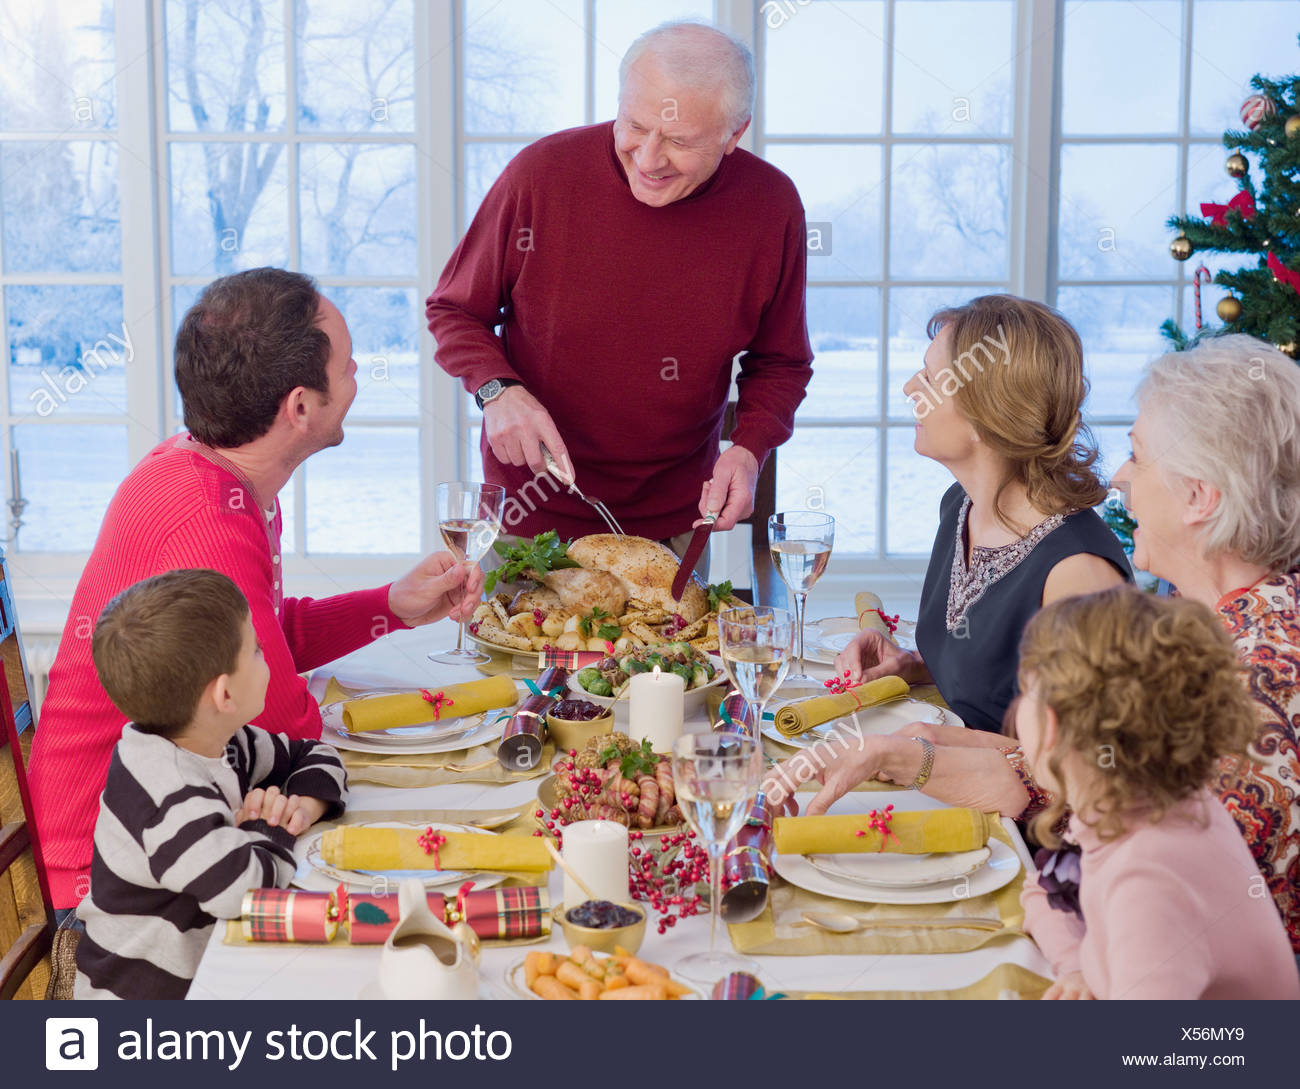 Man carving Christmas turkey at table Stock Photo